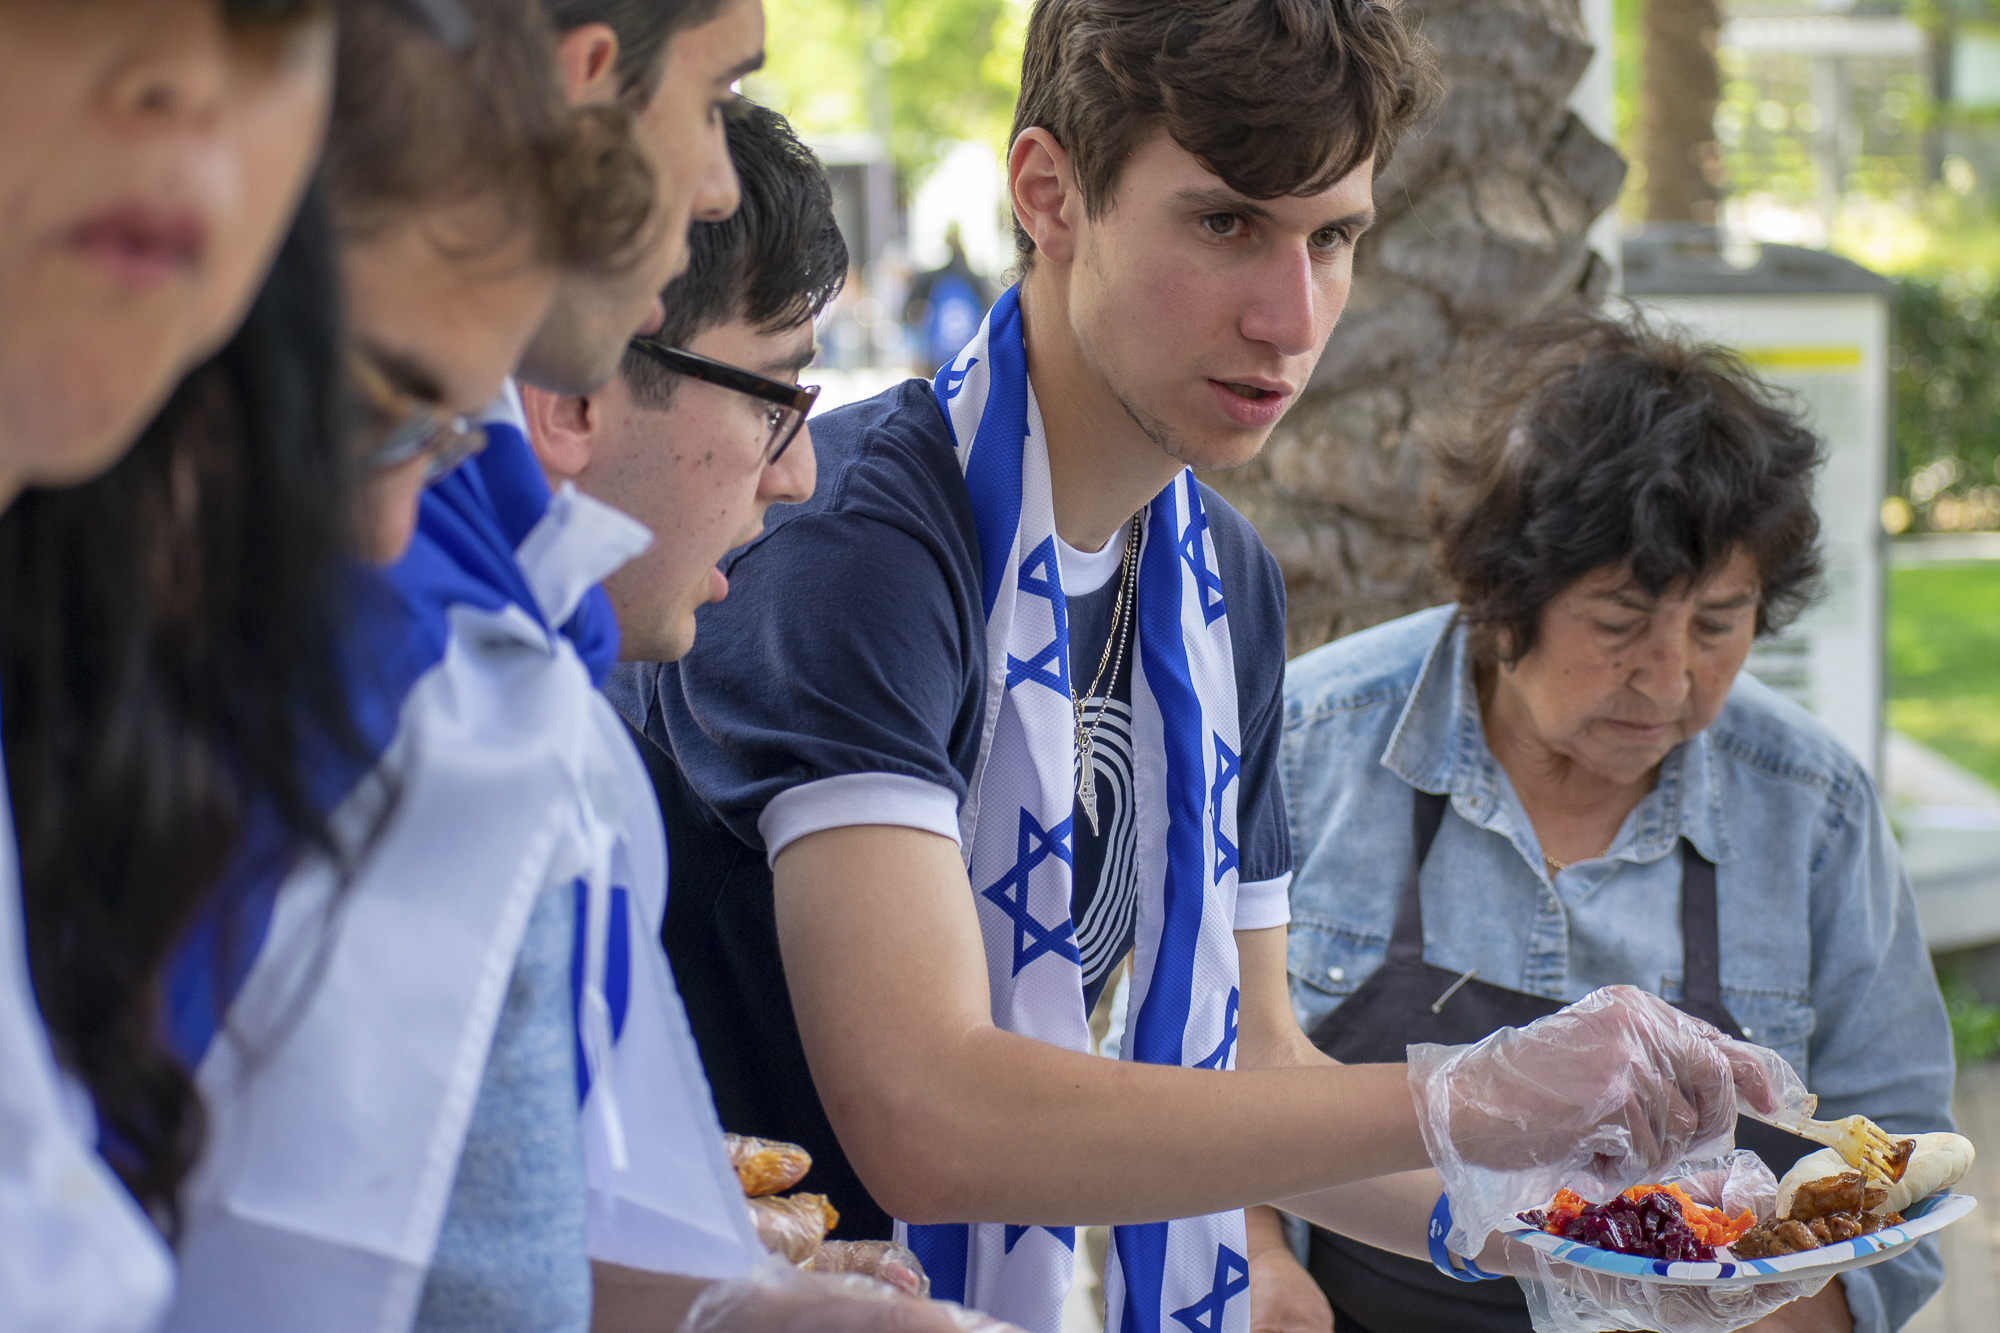 Food is served from the Ta-eem Grill in Los Angeles such as hummus and shawarma, which were provided to students for free during an event put on by the Students Supporting Israel club, including the president Justin Feldman, right, at the college on Thursday, May 10 in Santa Monica, California. The event was a celebration for the 70th anniversary of Israel's independence. (Ethan Lauren/Corsair Photo)